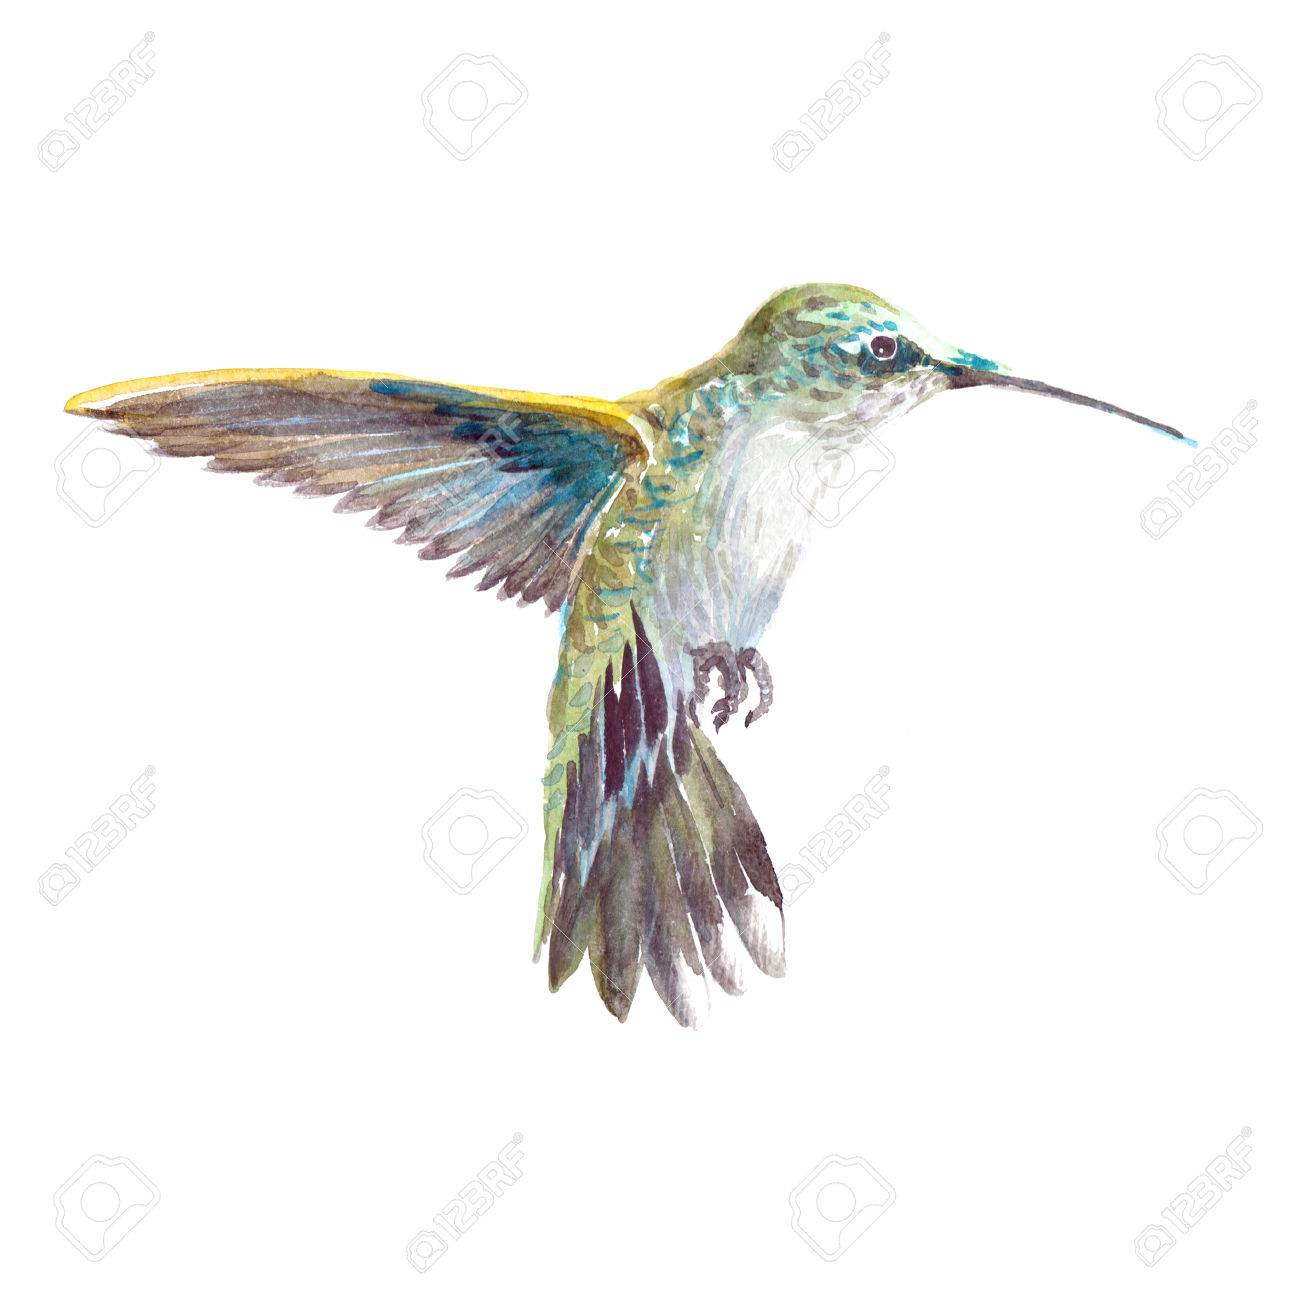 Aquarelle Colibri Realiste Colibri Animal Oiseau Tropical Isole Sur